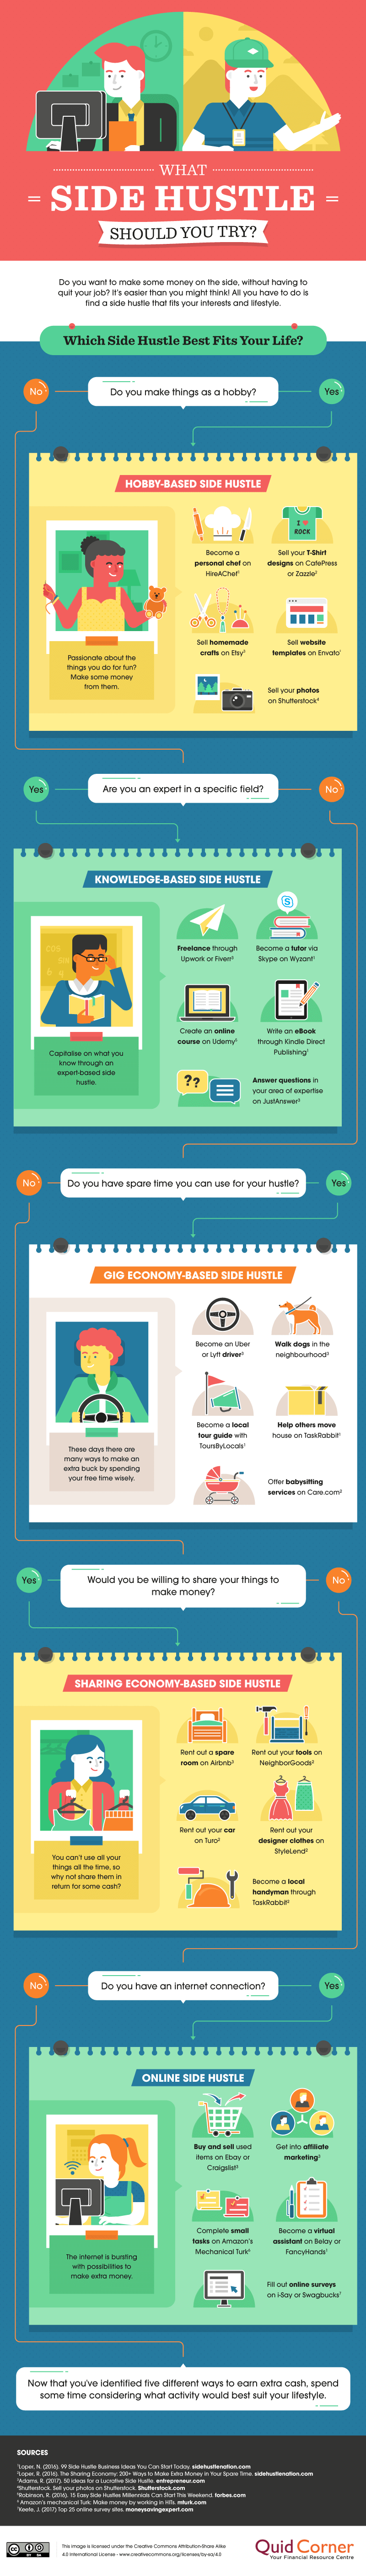 What-side-hustle-should-you-try